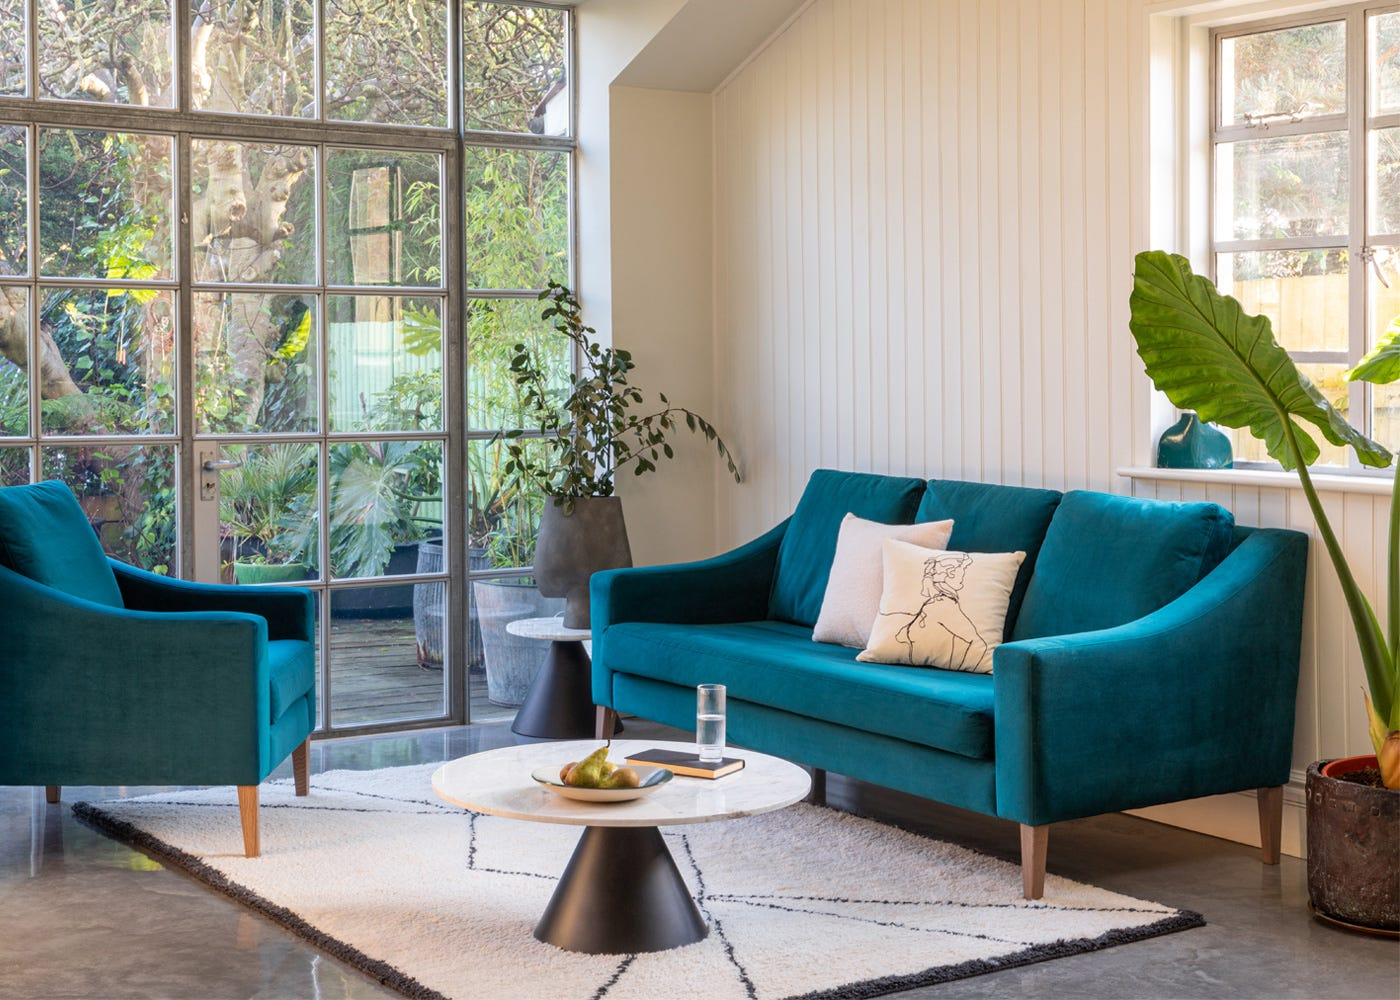 Richmond 3 Seater Sofa and Armchair in Smart Velvet Teal